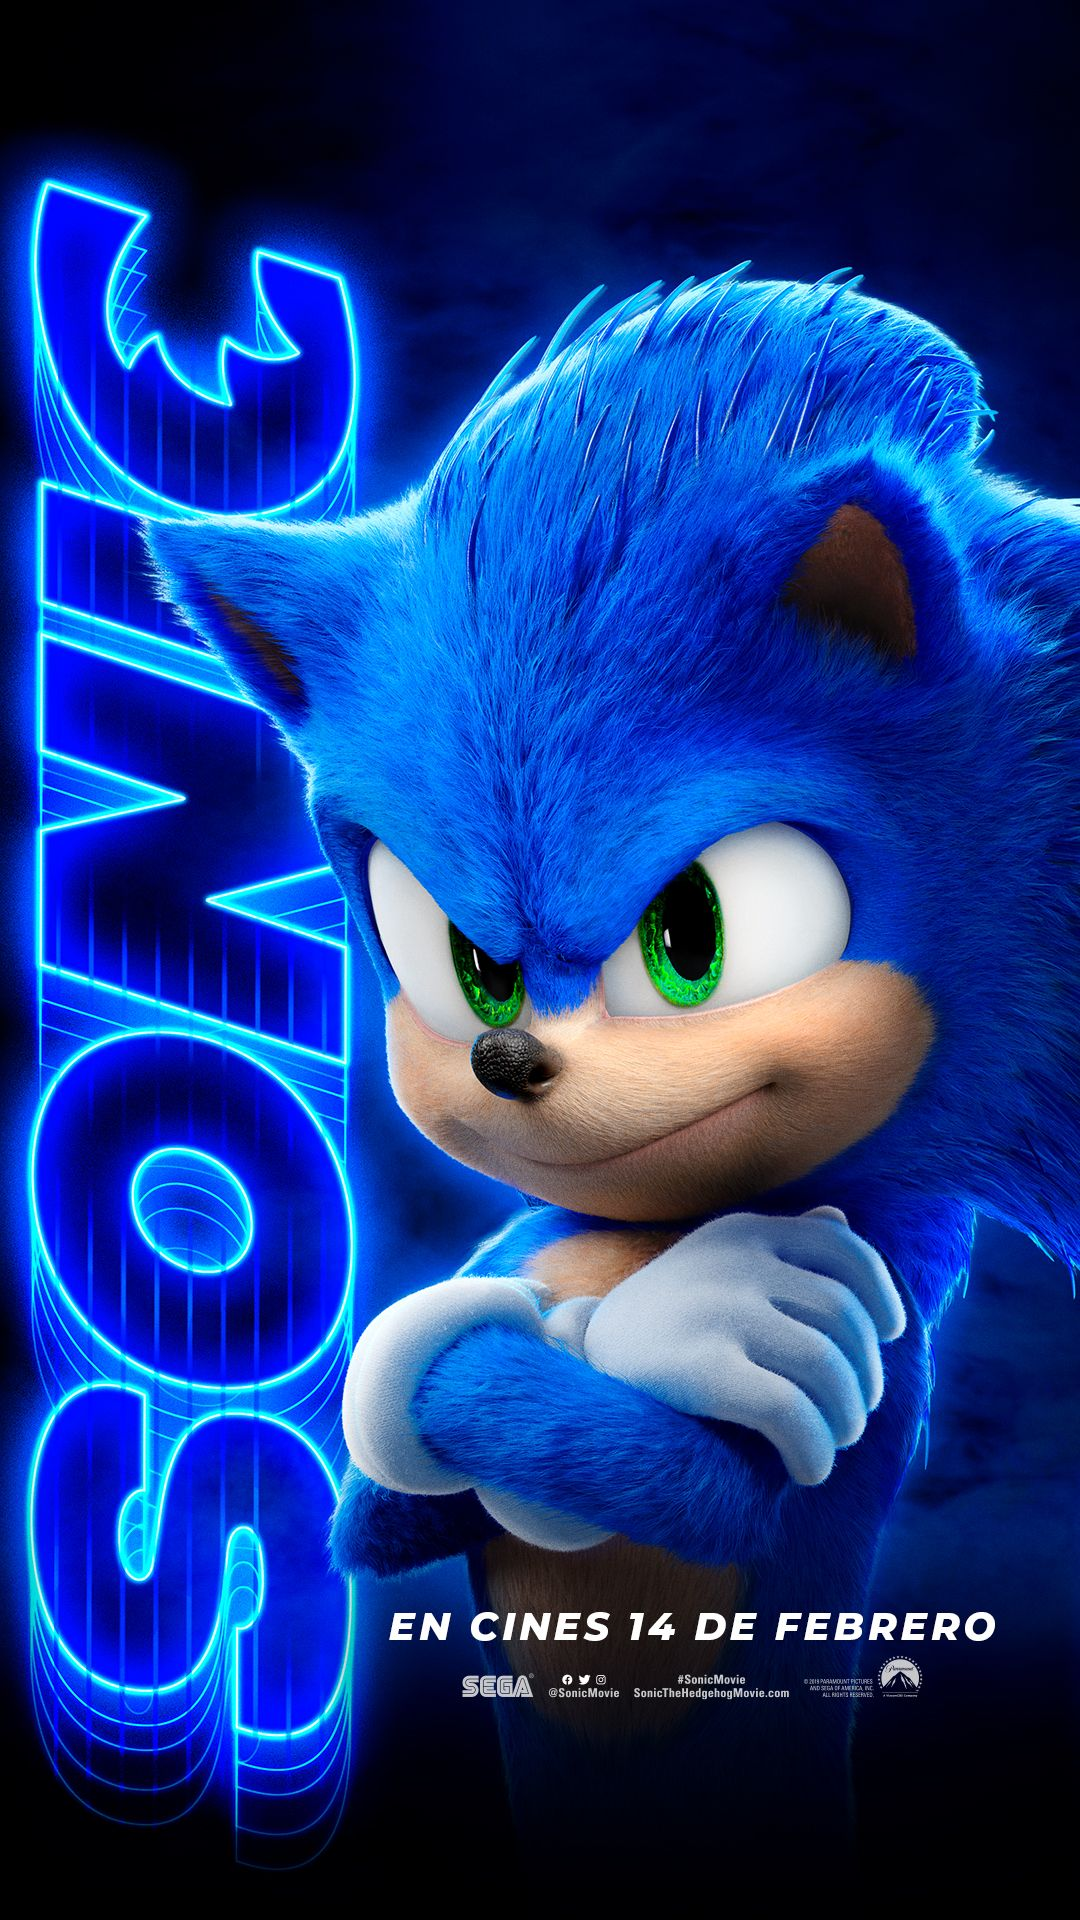 Paramount Spain On Sonic The Hedgehog Hedgehog Movie Sonic The